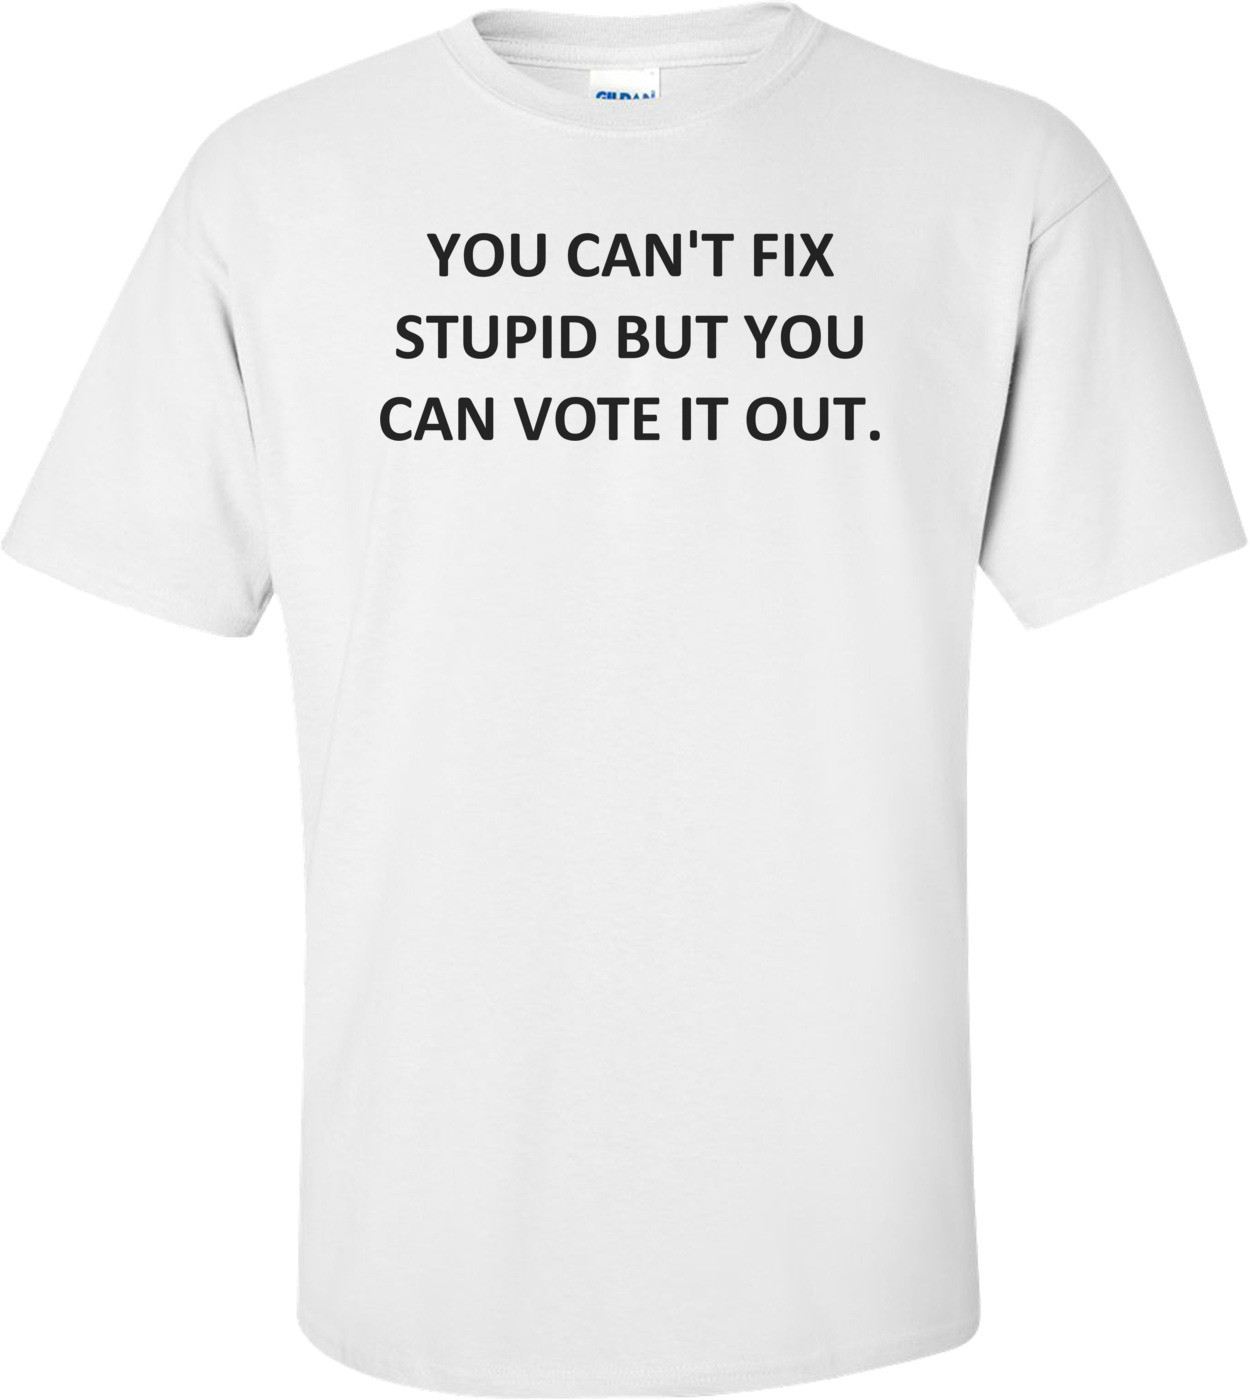 YOU CAN'T FIX STUPID BUT YOU CAN VOTE IT OUT. Shirt